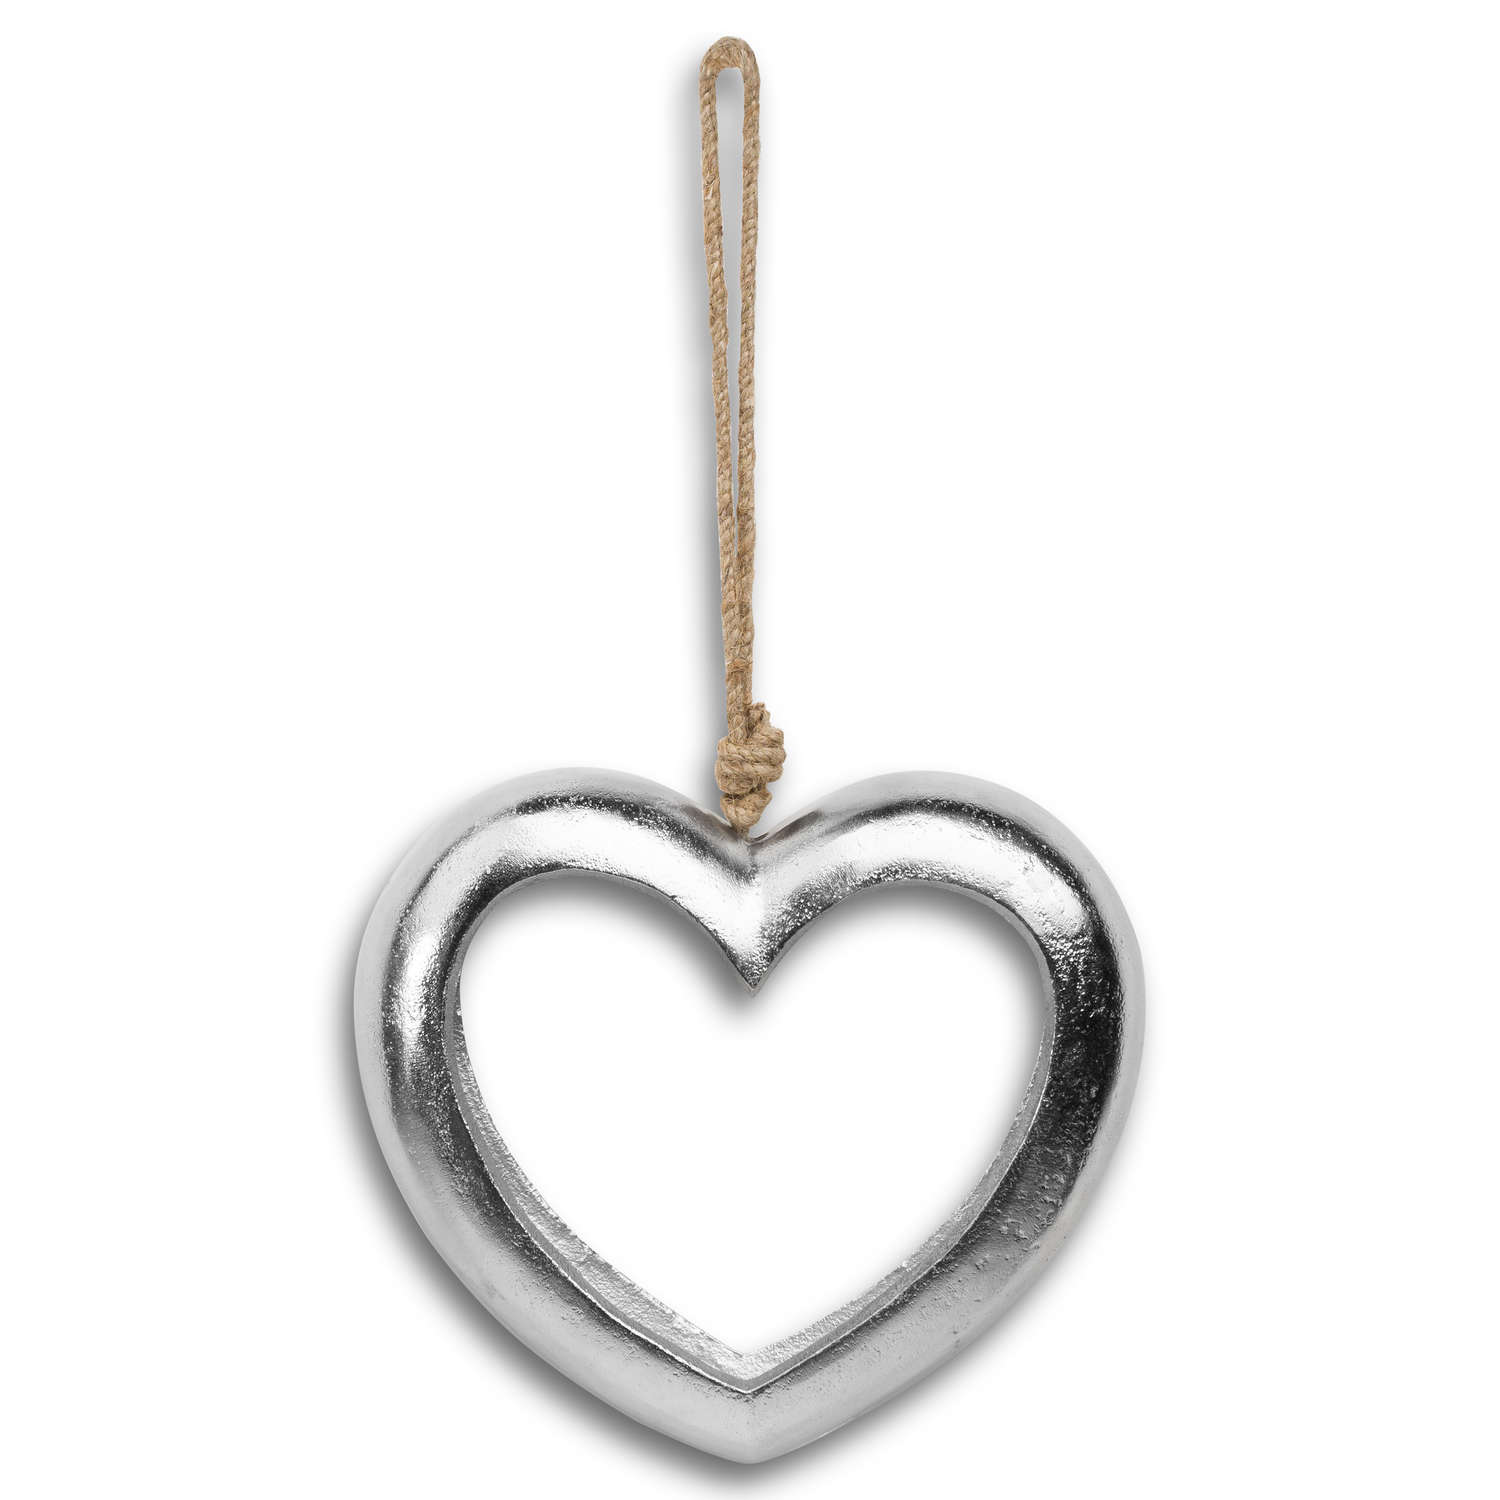 Casted Silver Cut Out Heart - Image 1